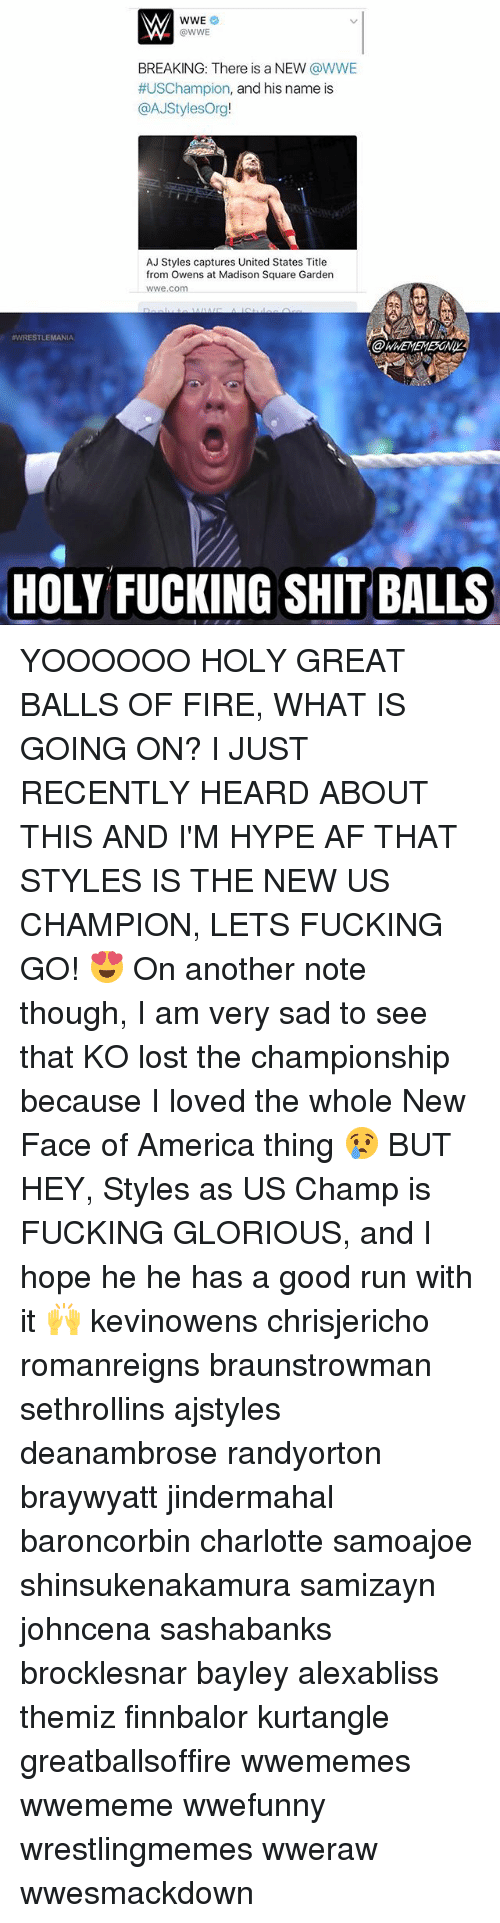 Aj Styles: @WWE  BREAKING: There is a NEW @WWE  #USChampion, and his name is  @AJStylesOrg!  AJ Styles captures United States Title  from Owens at Madison Square Garden  wwe.com  WRESTLEMANIA  OWWEMEMESONIY  HOLY FUCKING SHIT BALLS YOOOOOO HOLY GREAT BALLS OF FIRE, WHAT IS GOING ON? I JUST RECENTLY HEARD ABOUT THIS AND I'M HYPE AF THAT STYLES IS THE NEW US CHAMPION, LETS FUCKING GO! 😍 On another note though, I am very sad to see that KO lost the championship because I loved the whole New Face of America thing 😢 BUT HEY, Styles as US Champ is FUCKING GLORIOUS, and I hope he he has a good run with it 🙌 kevinowens chrisjericho romanreigns braunstrowman sethrollins ajstyles deanambrose randyorton braywyatt jindermahal baroncorbin charlotte samoajoe shinsukenakamura samizayn johncena sashabanks brocklesnar bayley alexabliss themiz finnbalor kurtangle greatballsoffire wwememes wwememe wwefunny wrestlingmemes wweraw wwesmackdown